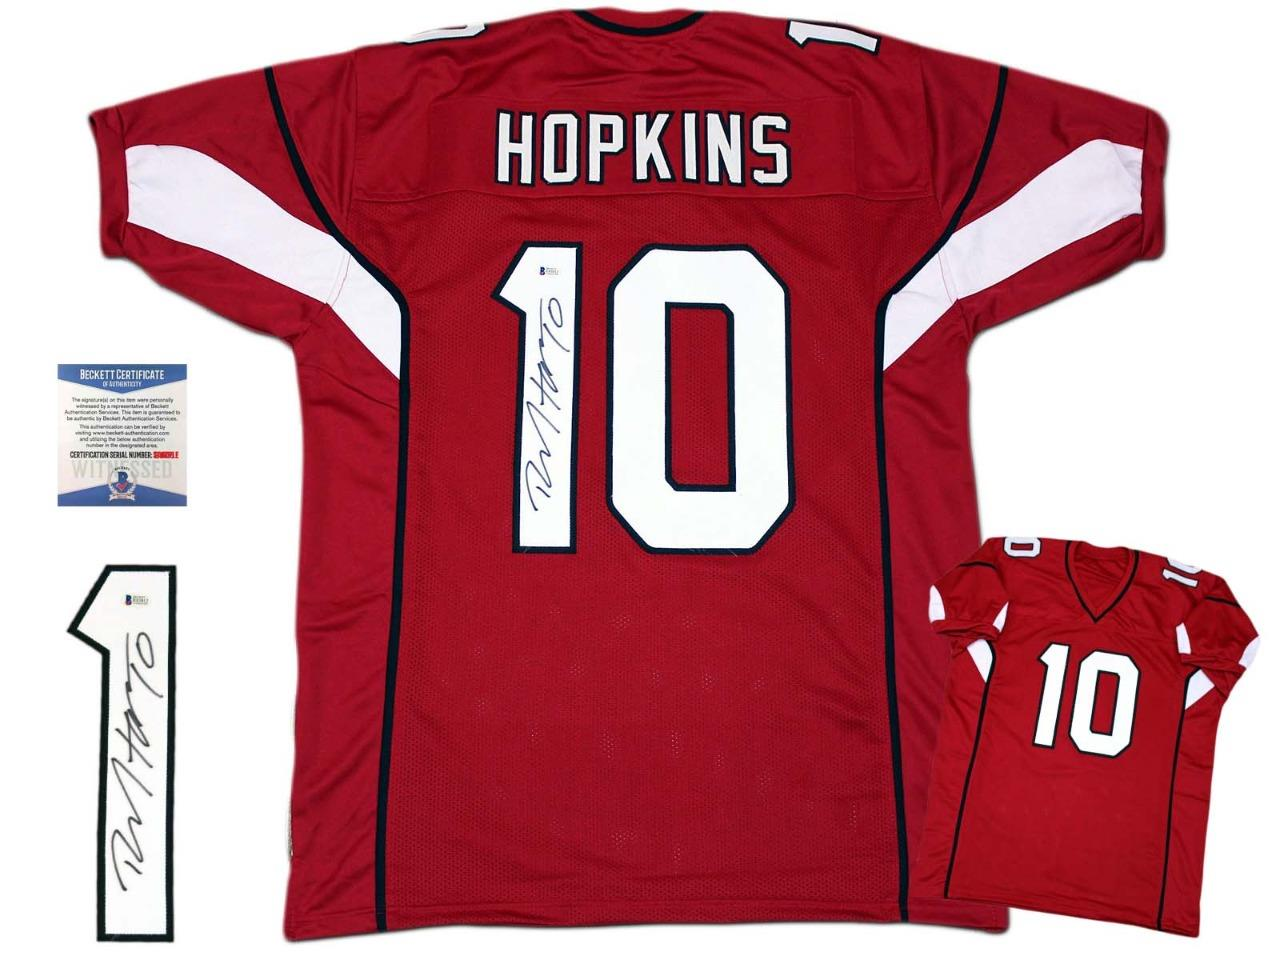 DeAndre Hopkins Autographed Signed Jersey - Red - Beckett Authentic